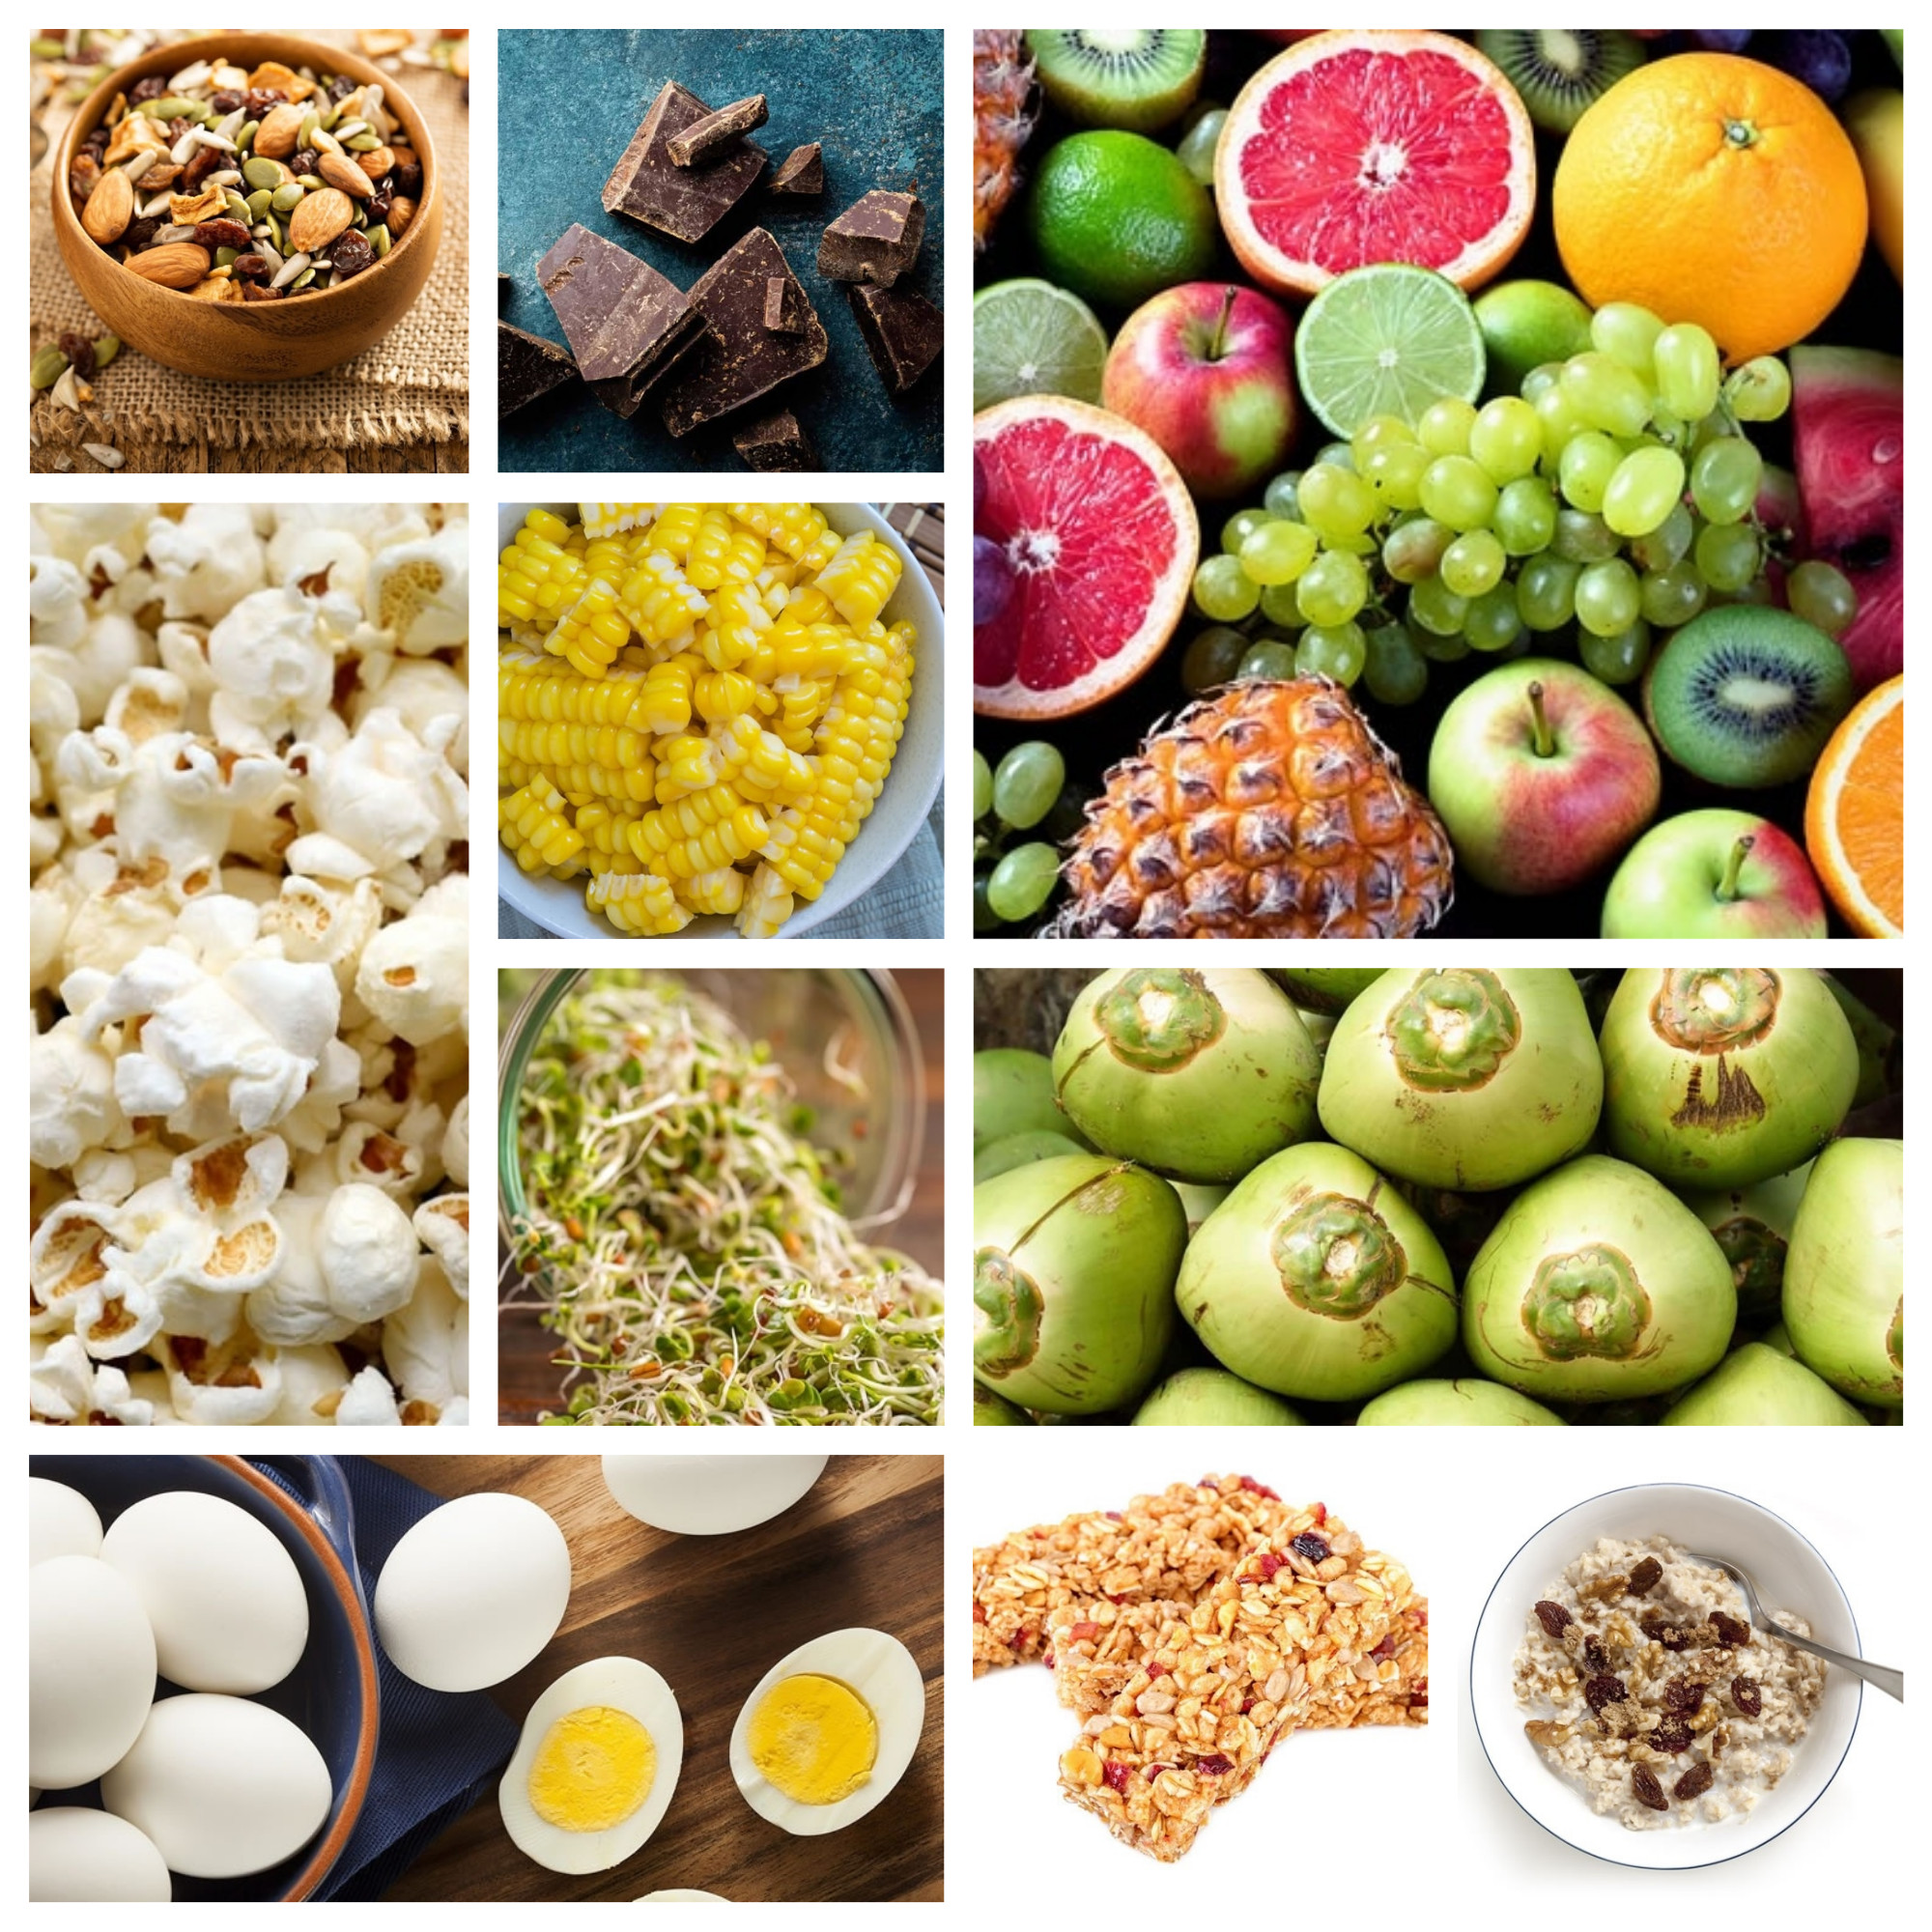 Healthy Snacks For Office  Healthy Snack Options during fice Hours